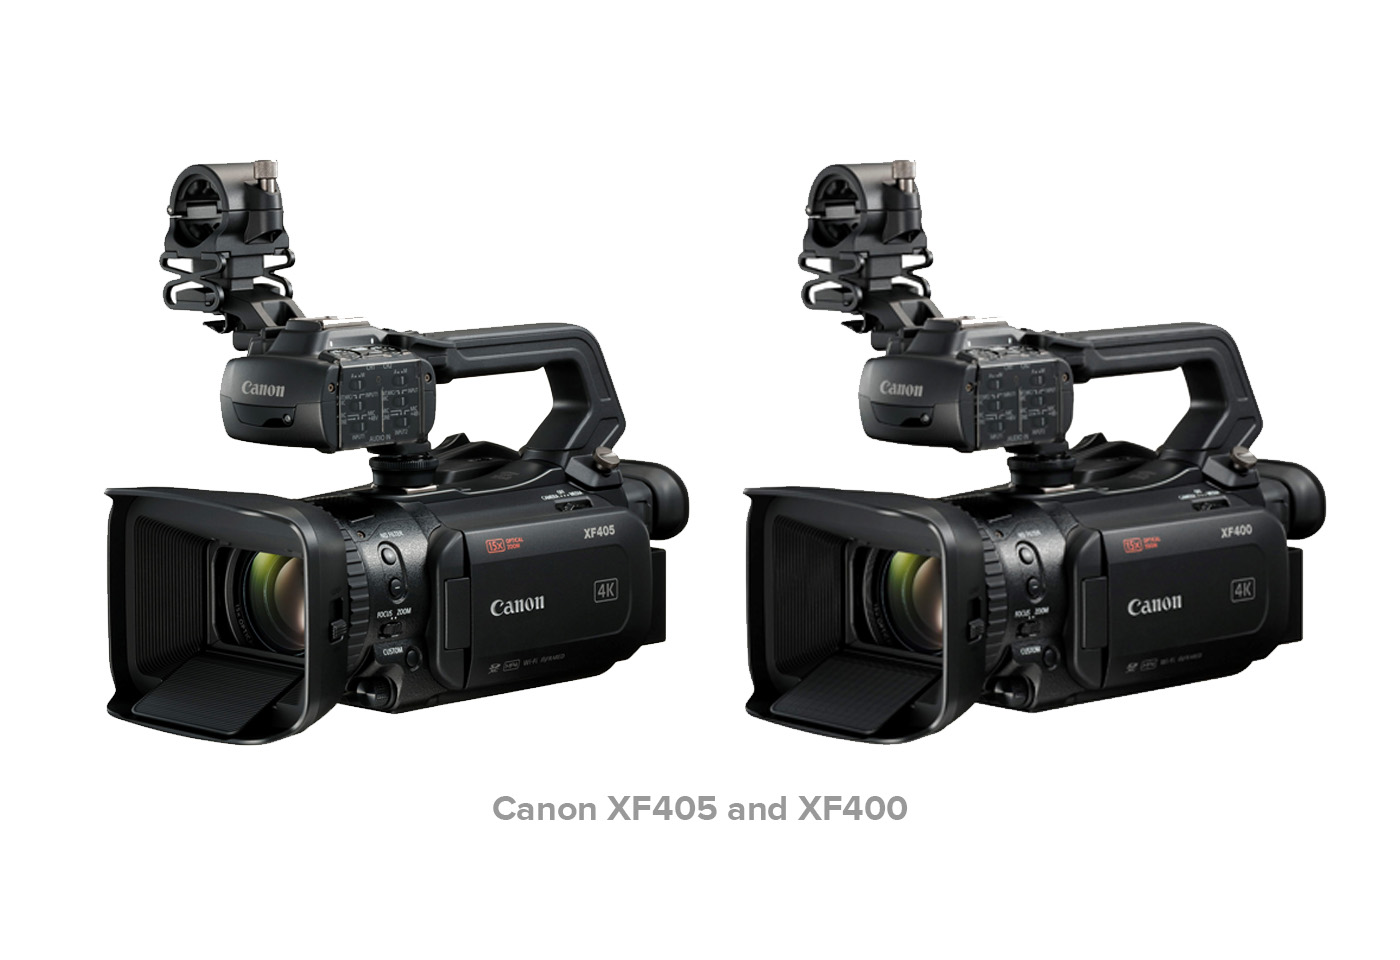 Product image of XF405 and XF400